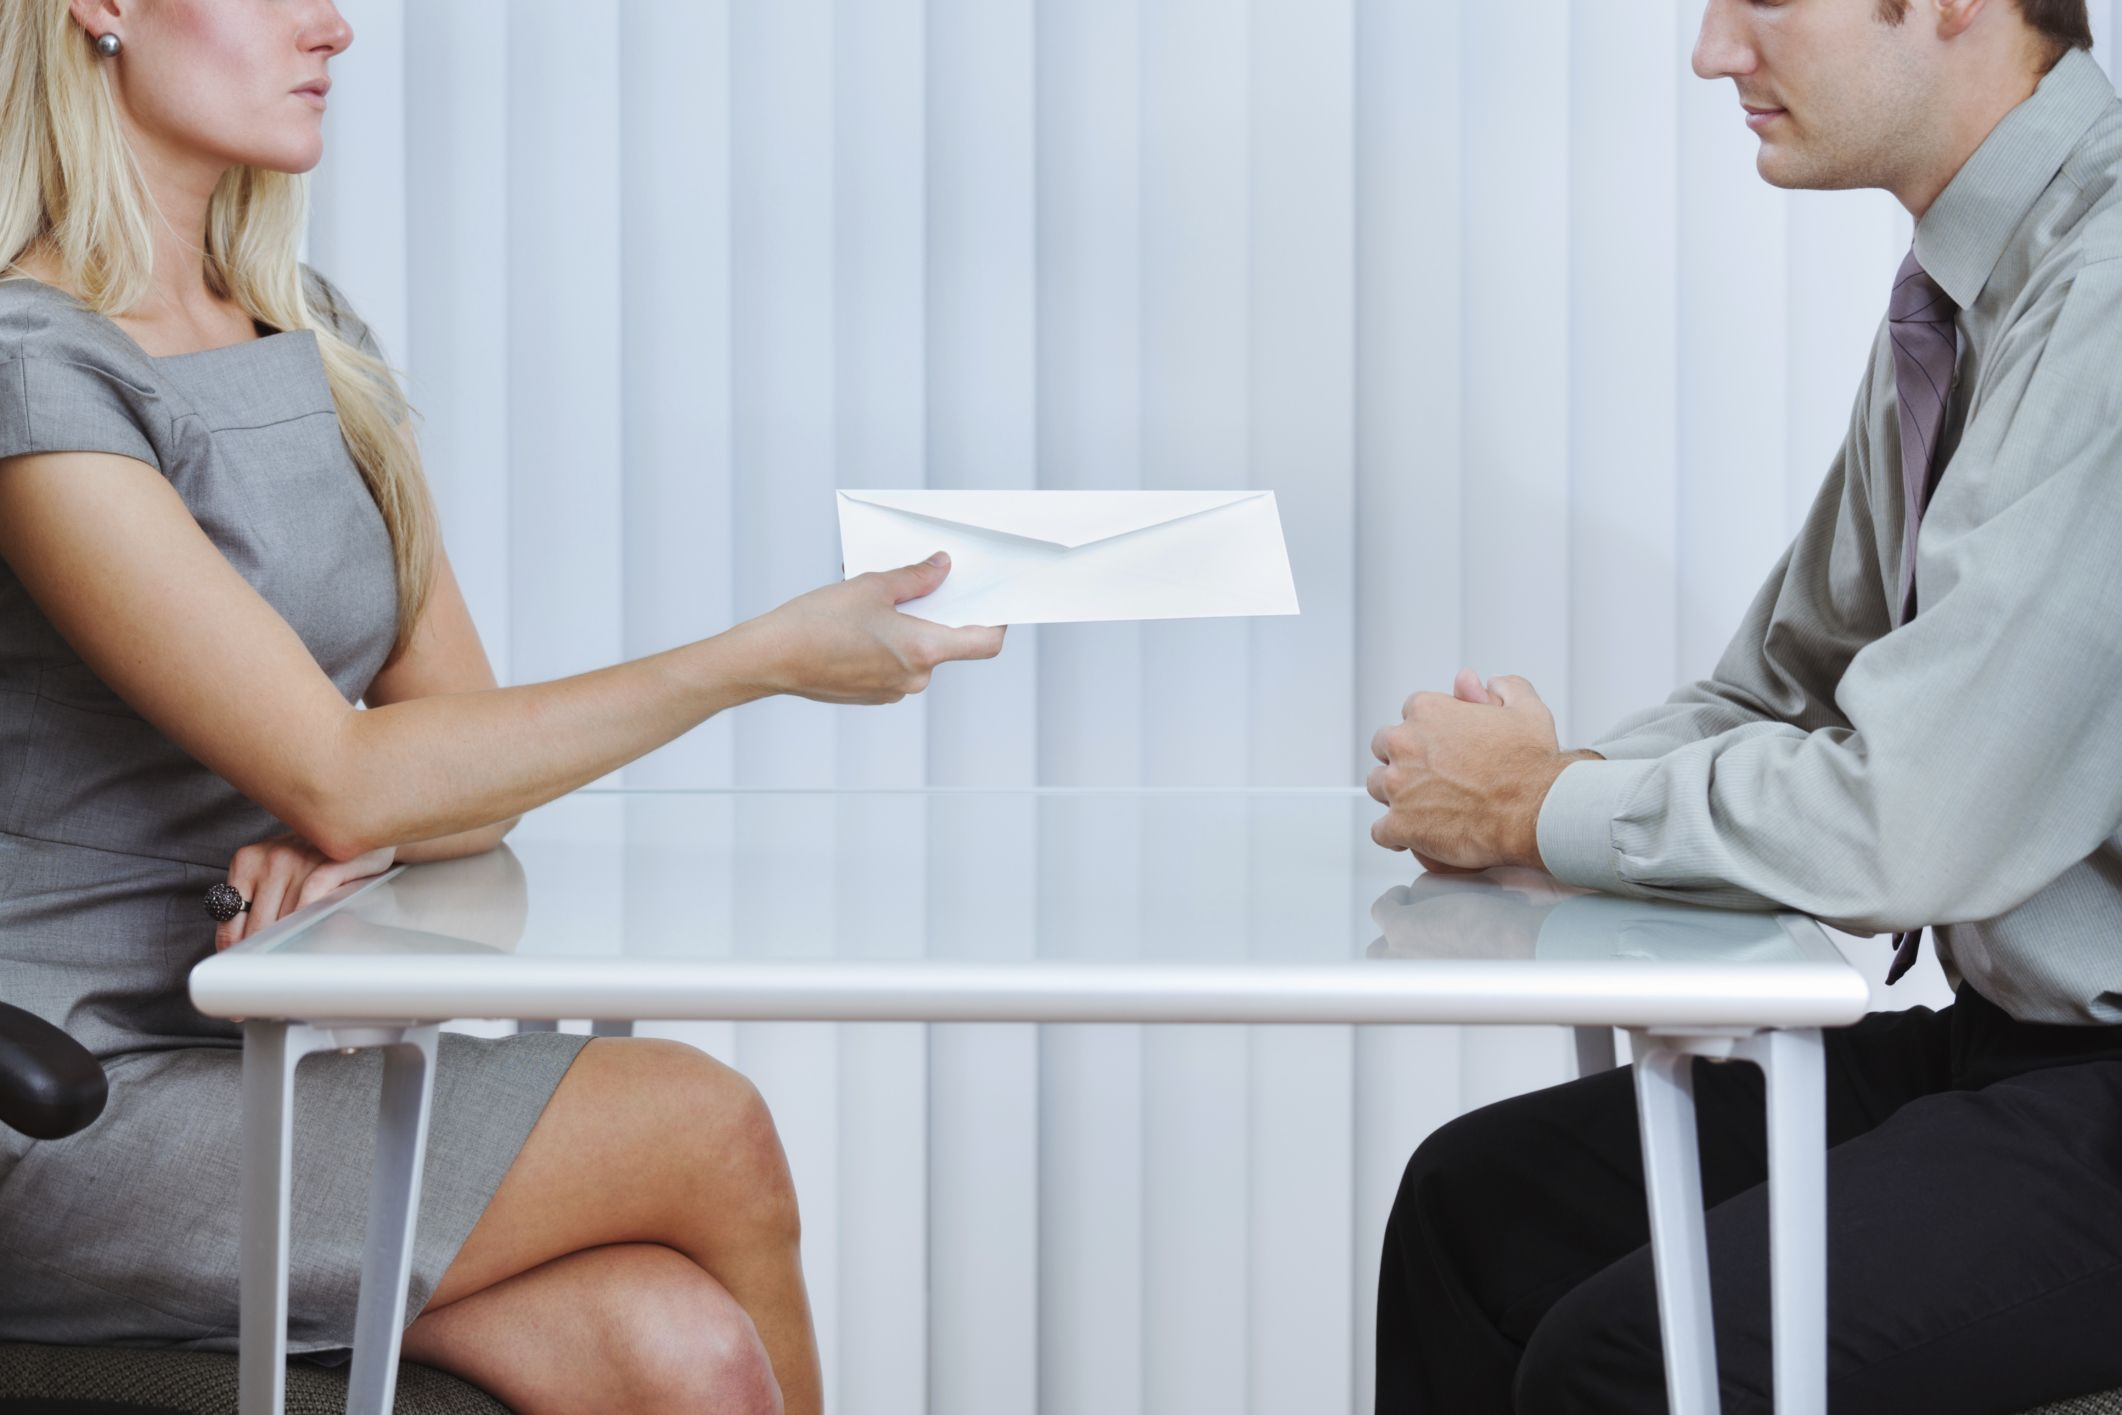 9593075eaa10aa5389998240efd760a1 - How To Ask Your Boss If You Are Getting Fired